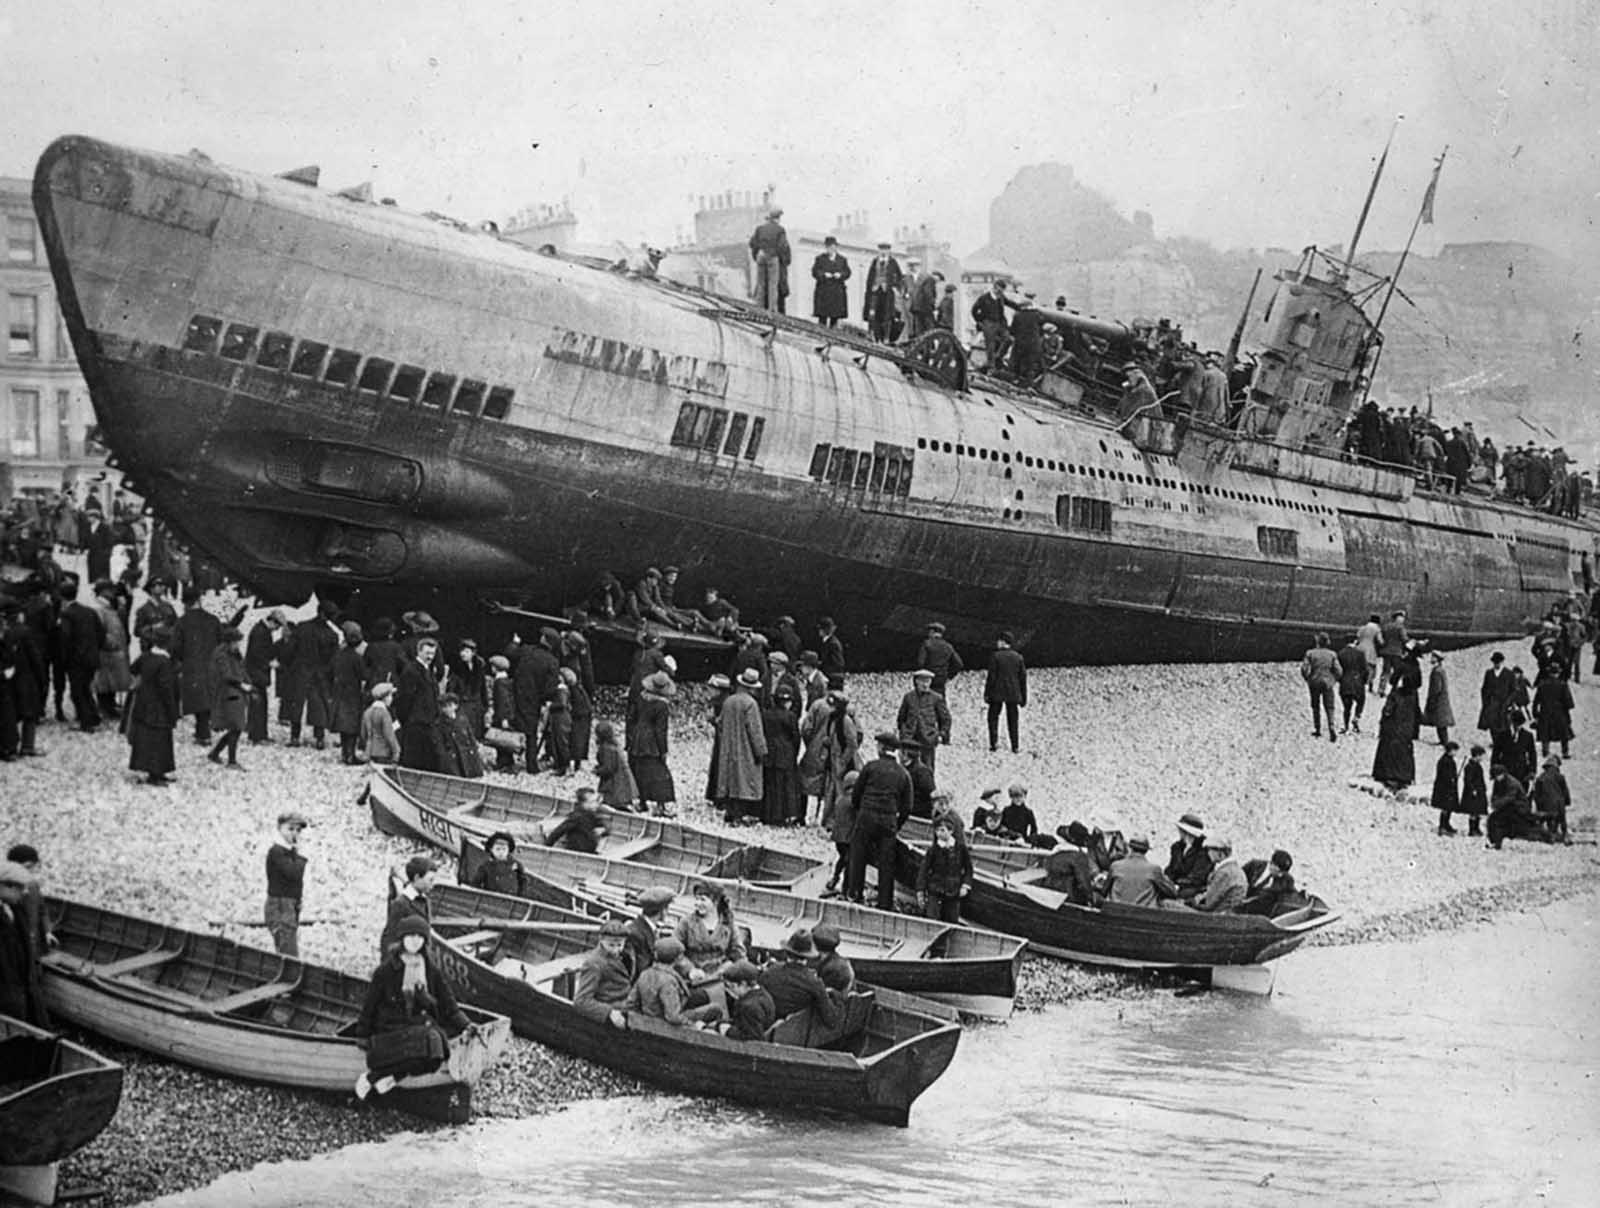 A German U-boat stranded on the South Coast of England, after surrender.